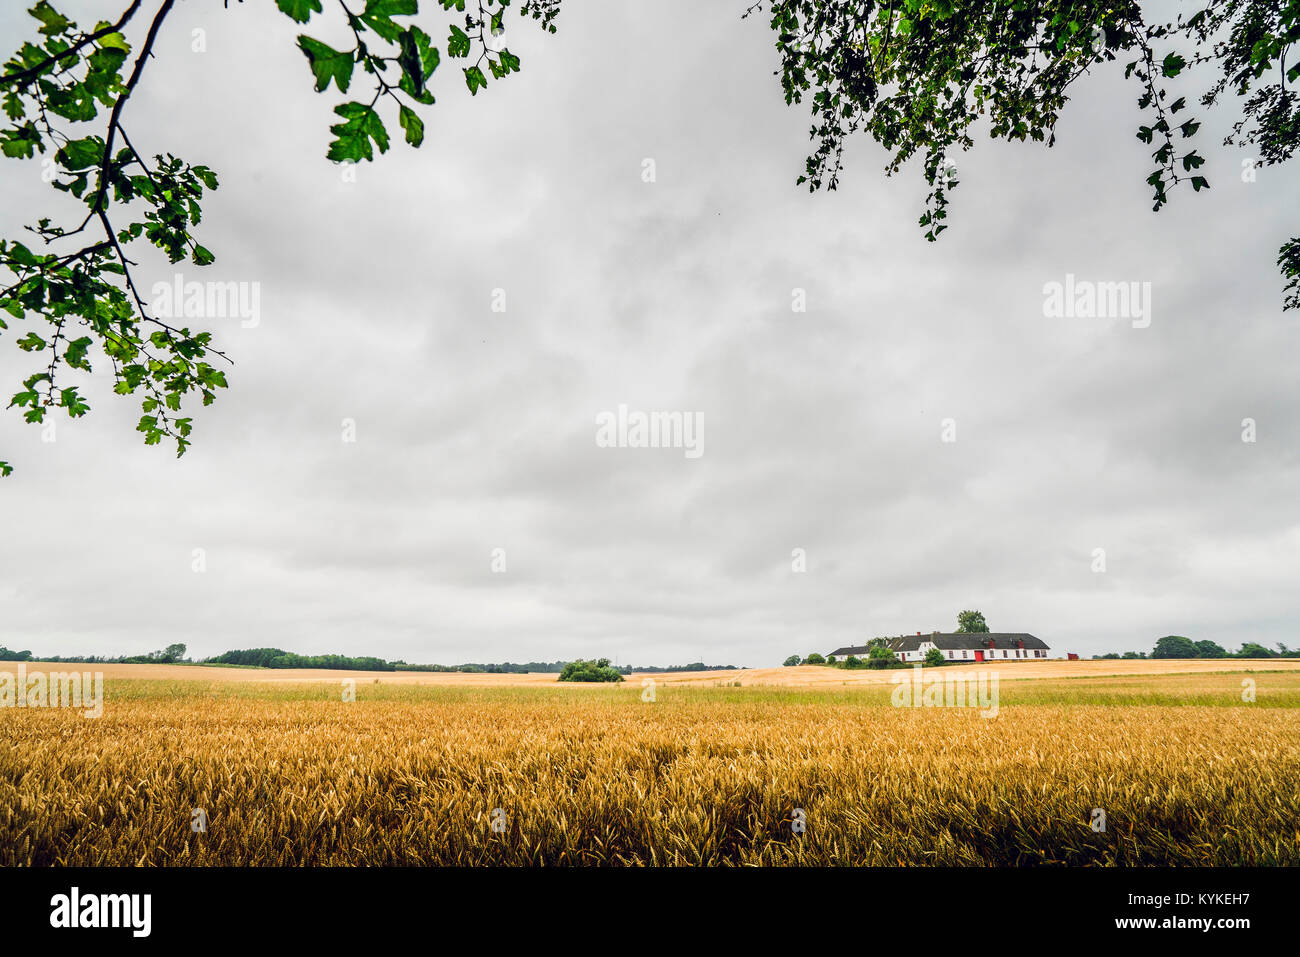 Golden grain on a rural field in cloudy weather with a farm house in the distance - Stock Image